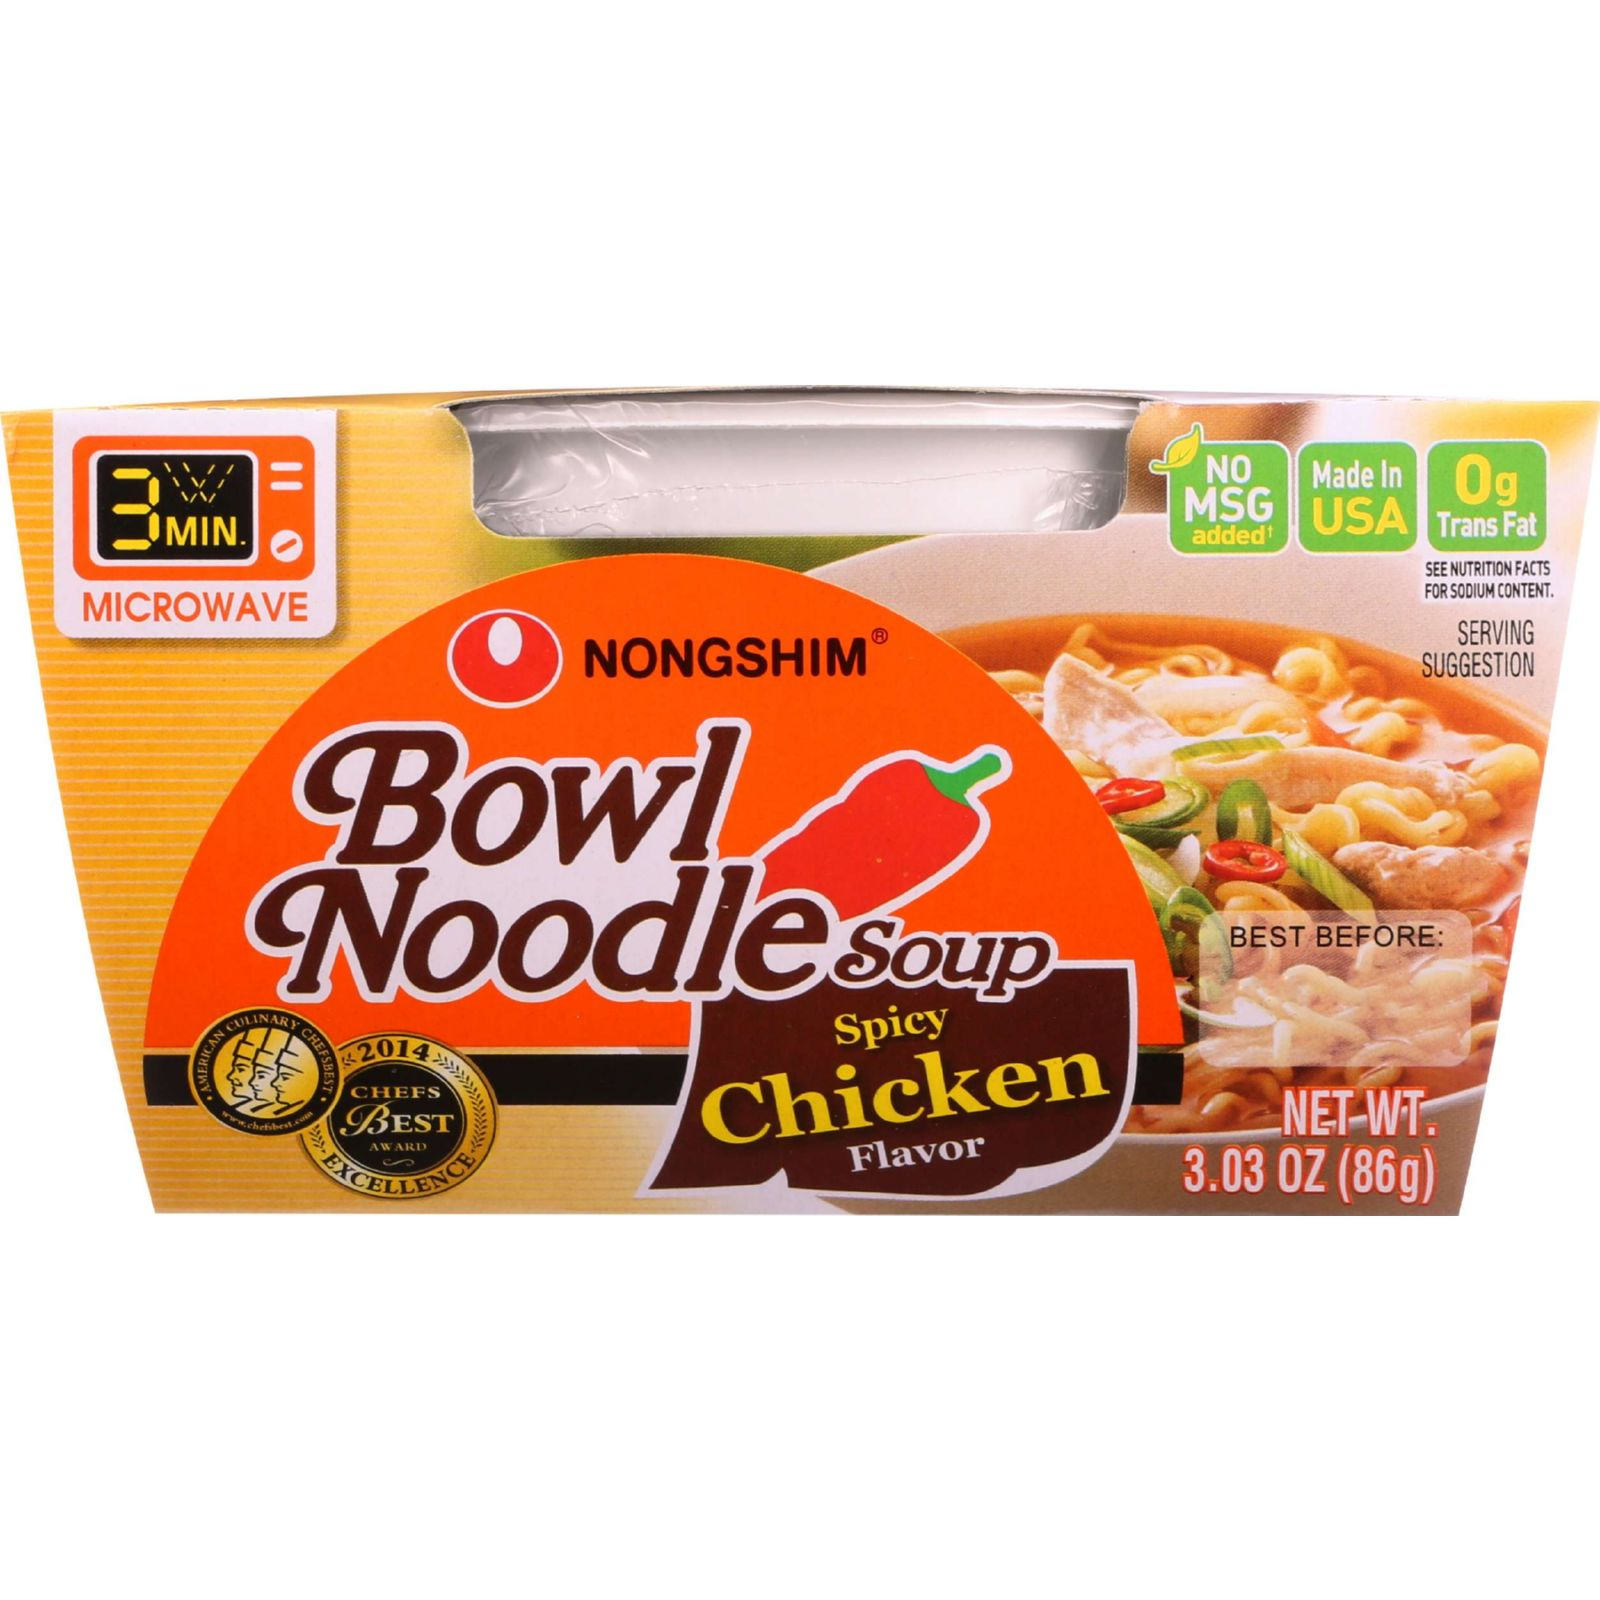 Nongshim Bowl Noodle Spicy Chicken, 3.03 Oz, 12 Ct